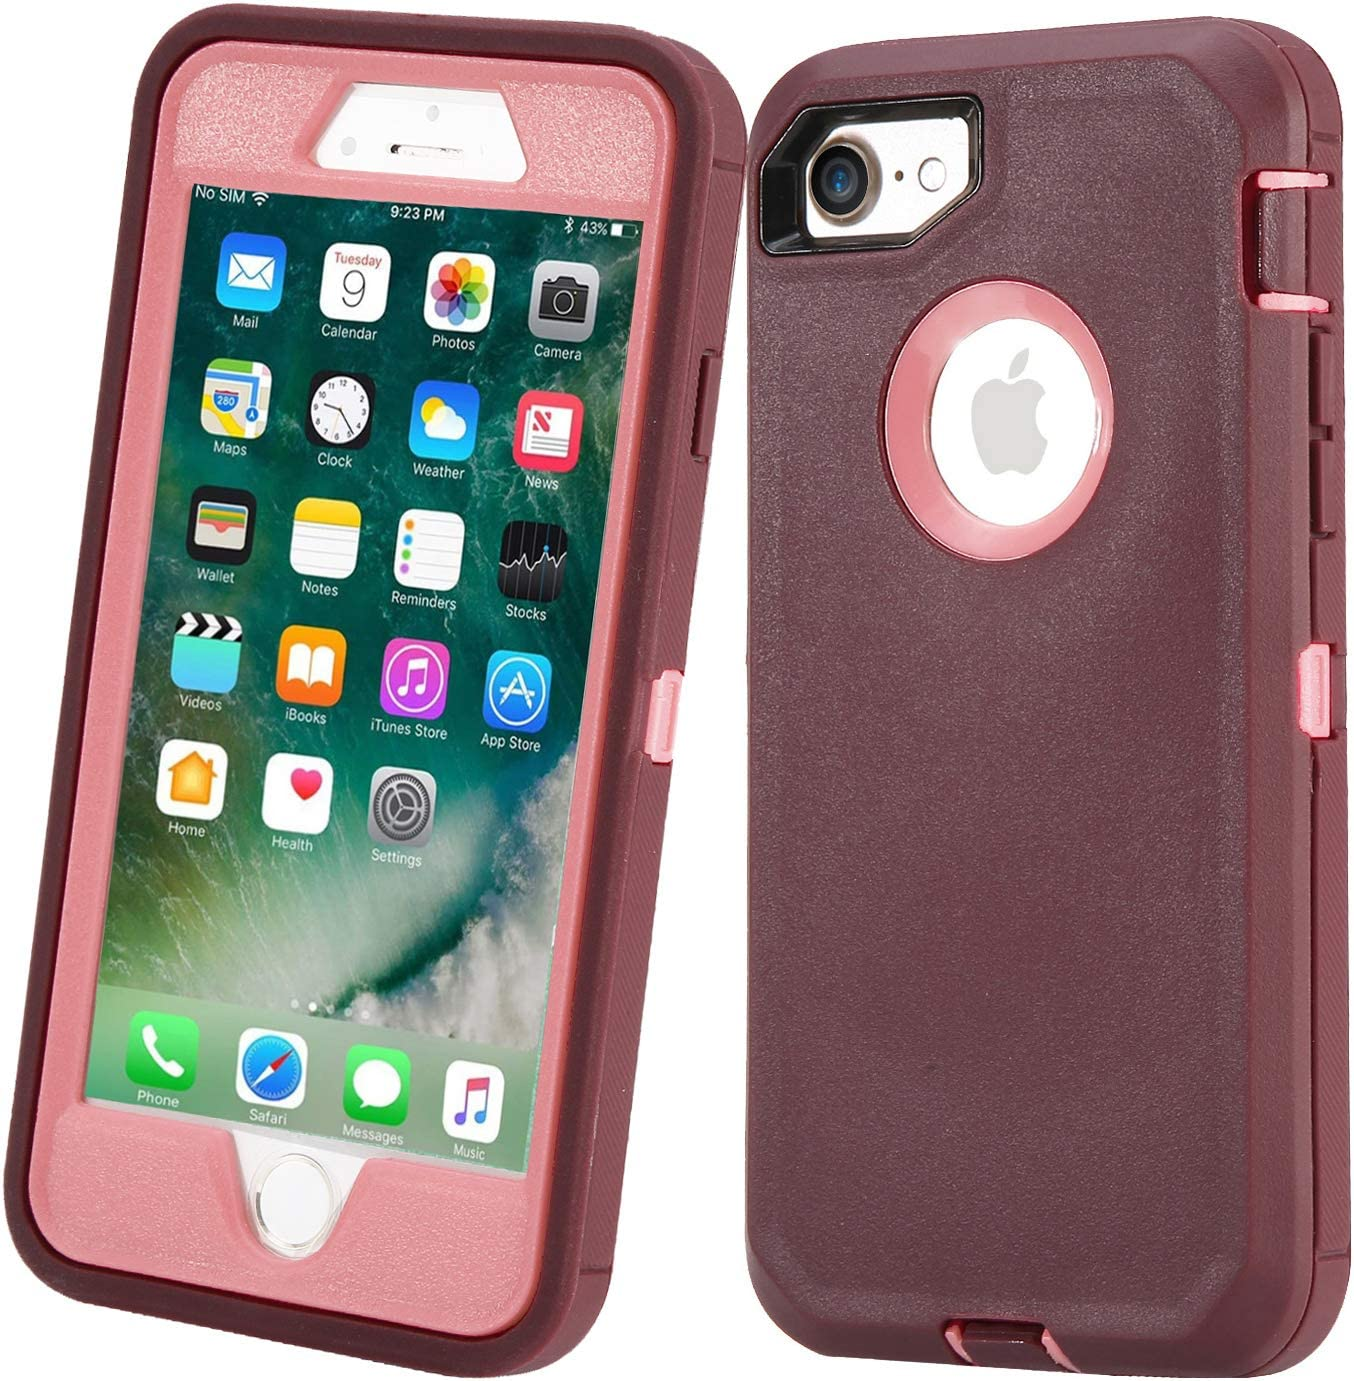 Stroson Case for iPhone 7 / iPhone 8, Heavy Duty Shockproof 3 in 1 Hybrid Bumper Support Wireless Charger Protective Cover for Apple iPhone 7/8 (Wine+Pink)